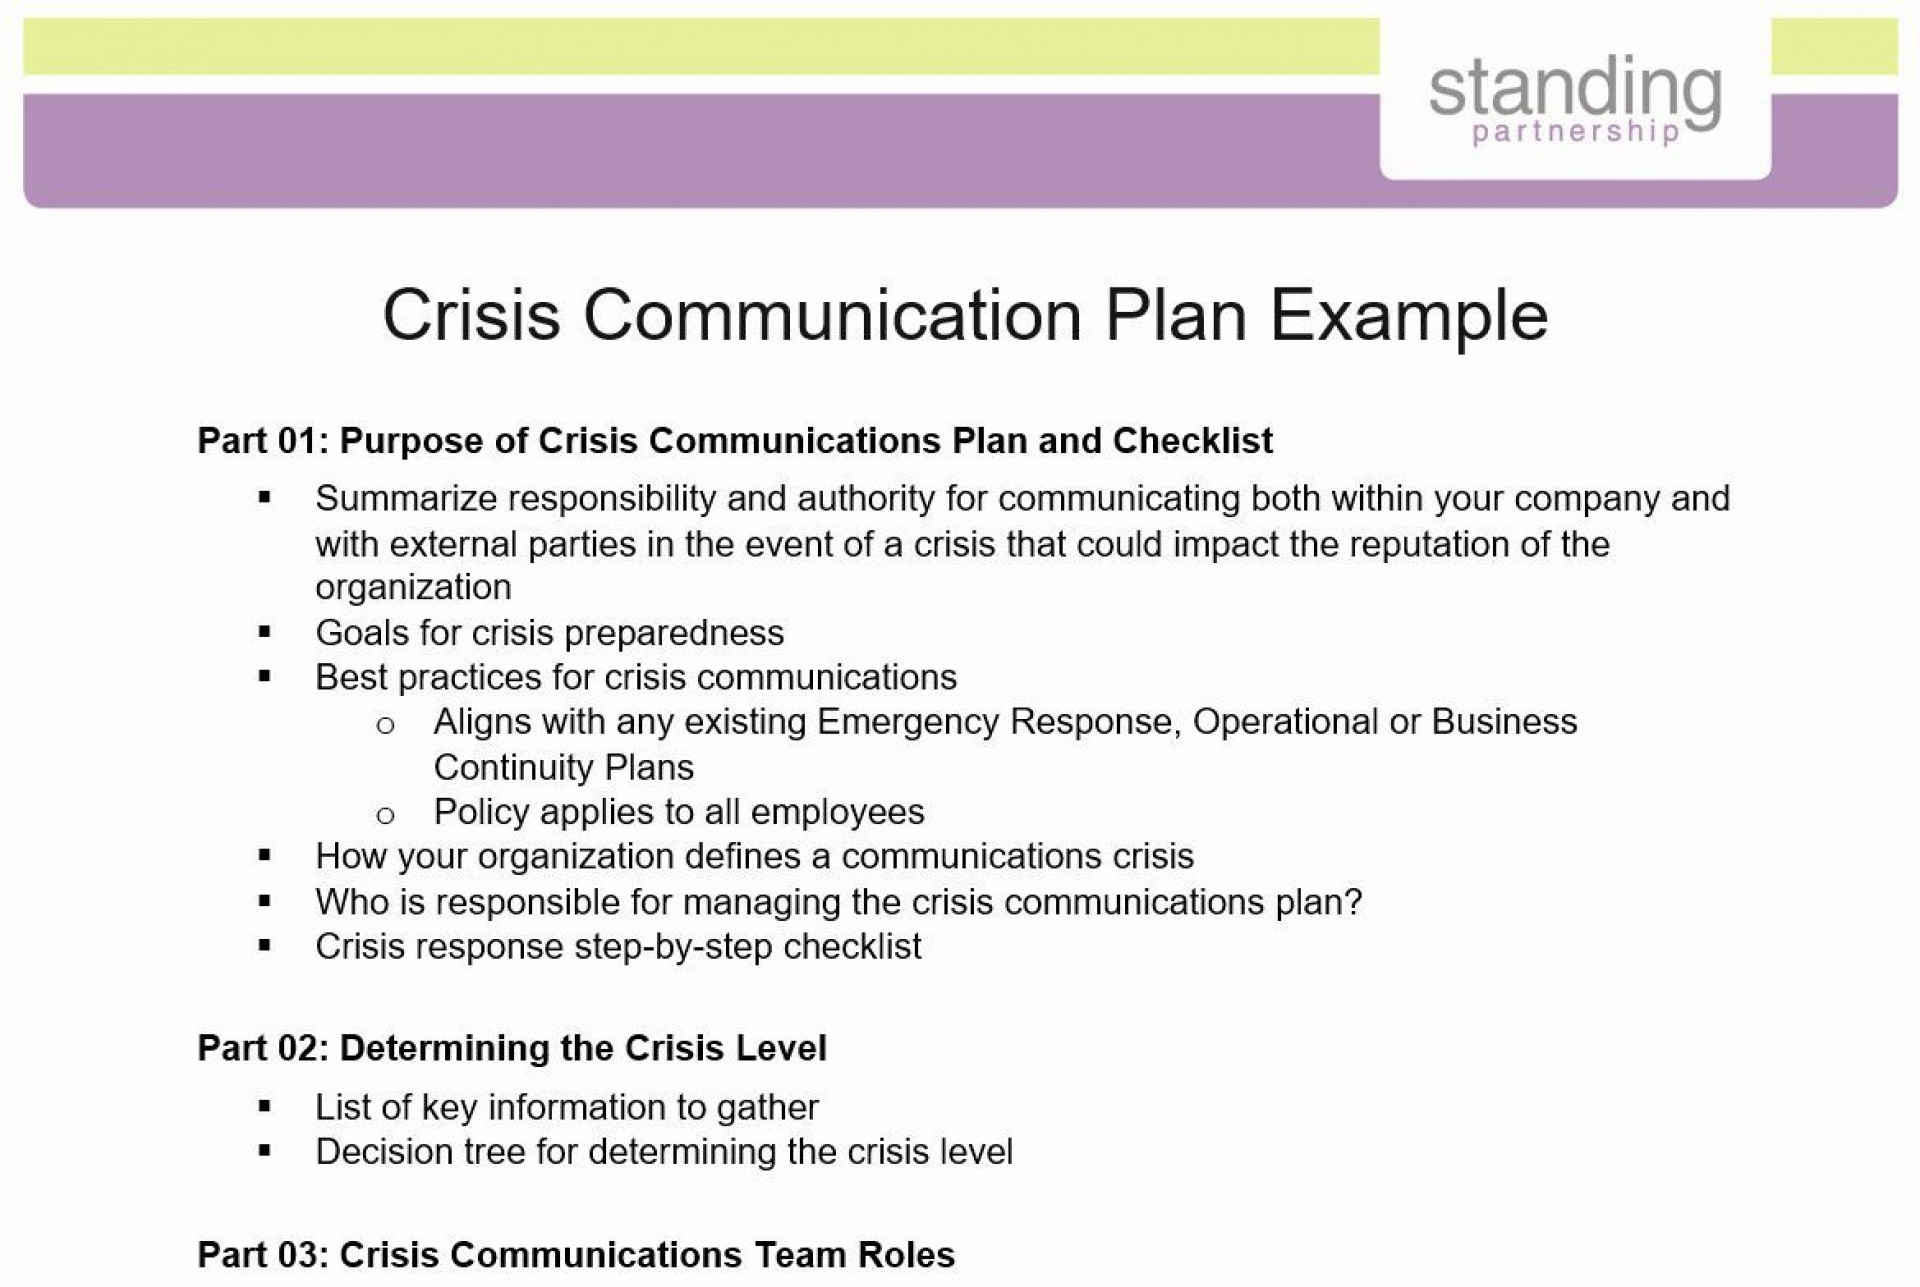 002 Exceptional Crisi Communication Plan Template Inspiration  For Higher Education Nonprofit1920